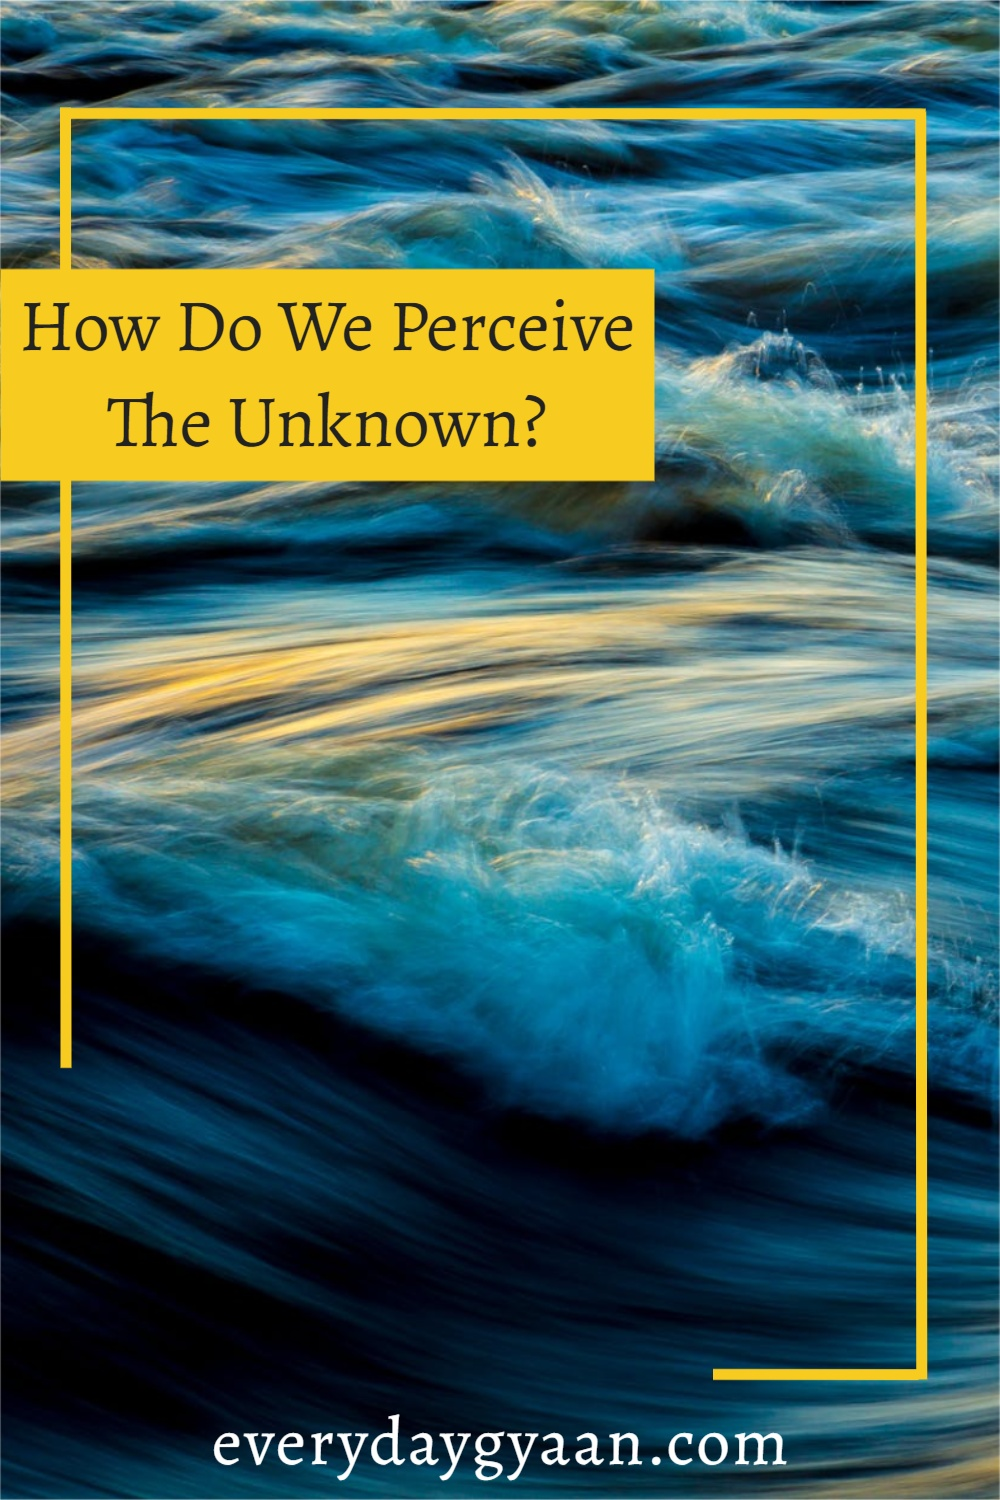 How Do We Perceive The Unknown?